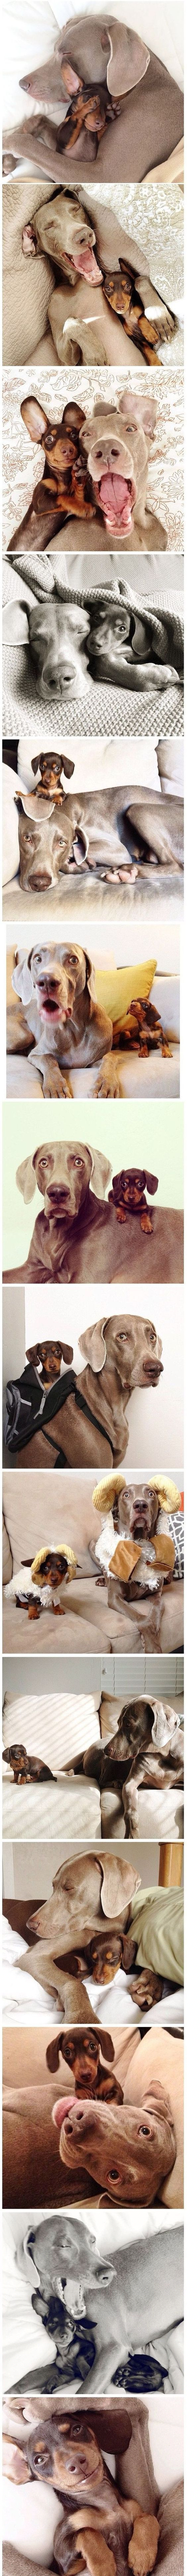 We asked pet photographer Mark Rogers for his best tricks for taking high-quality dog pictures